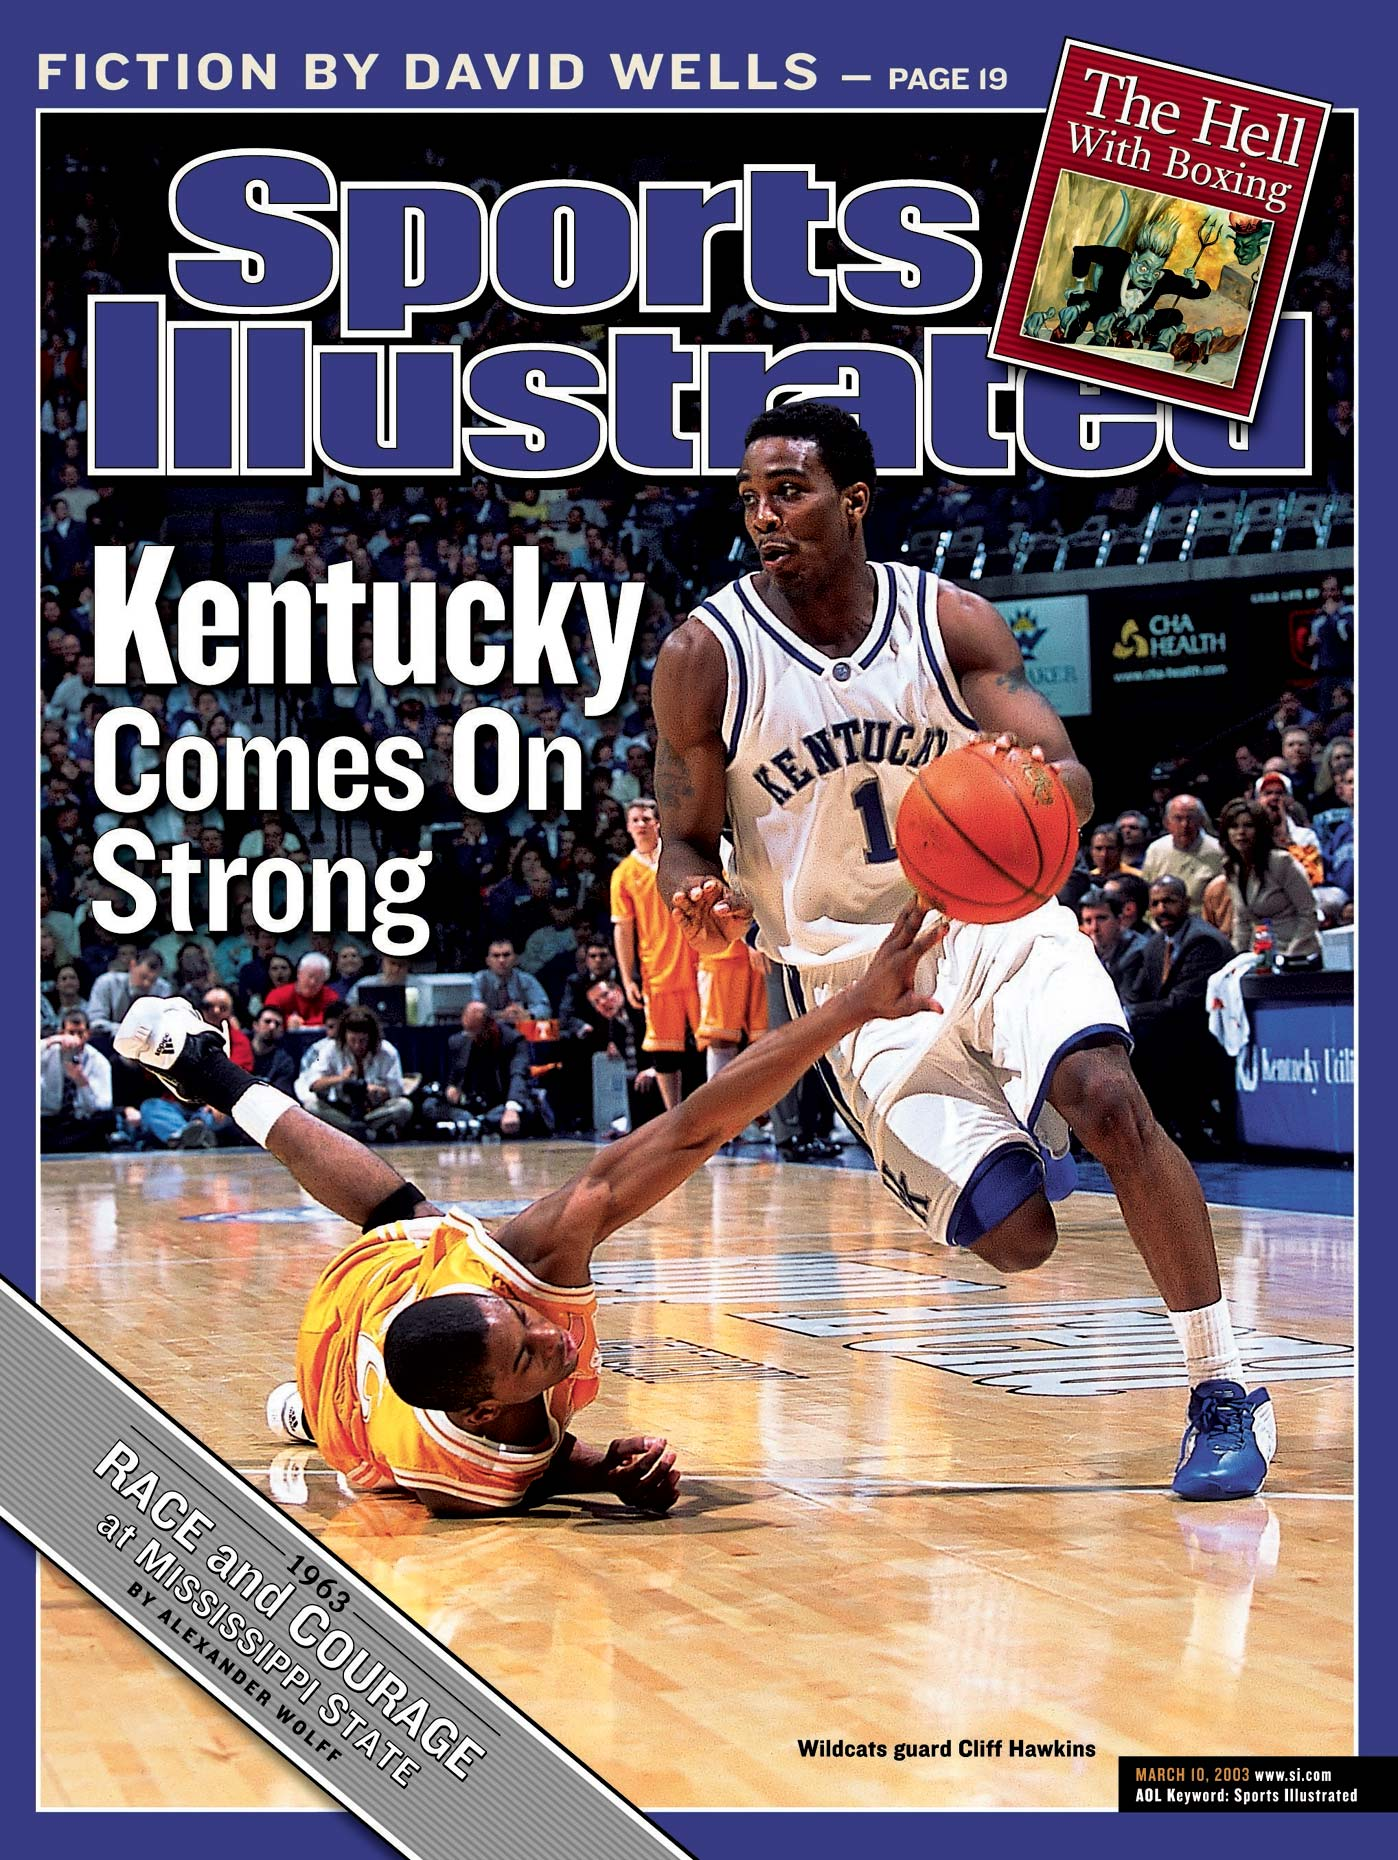 Cliff Hawkins | Kentucky Basketball | Sports Illustrated Cover